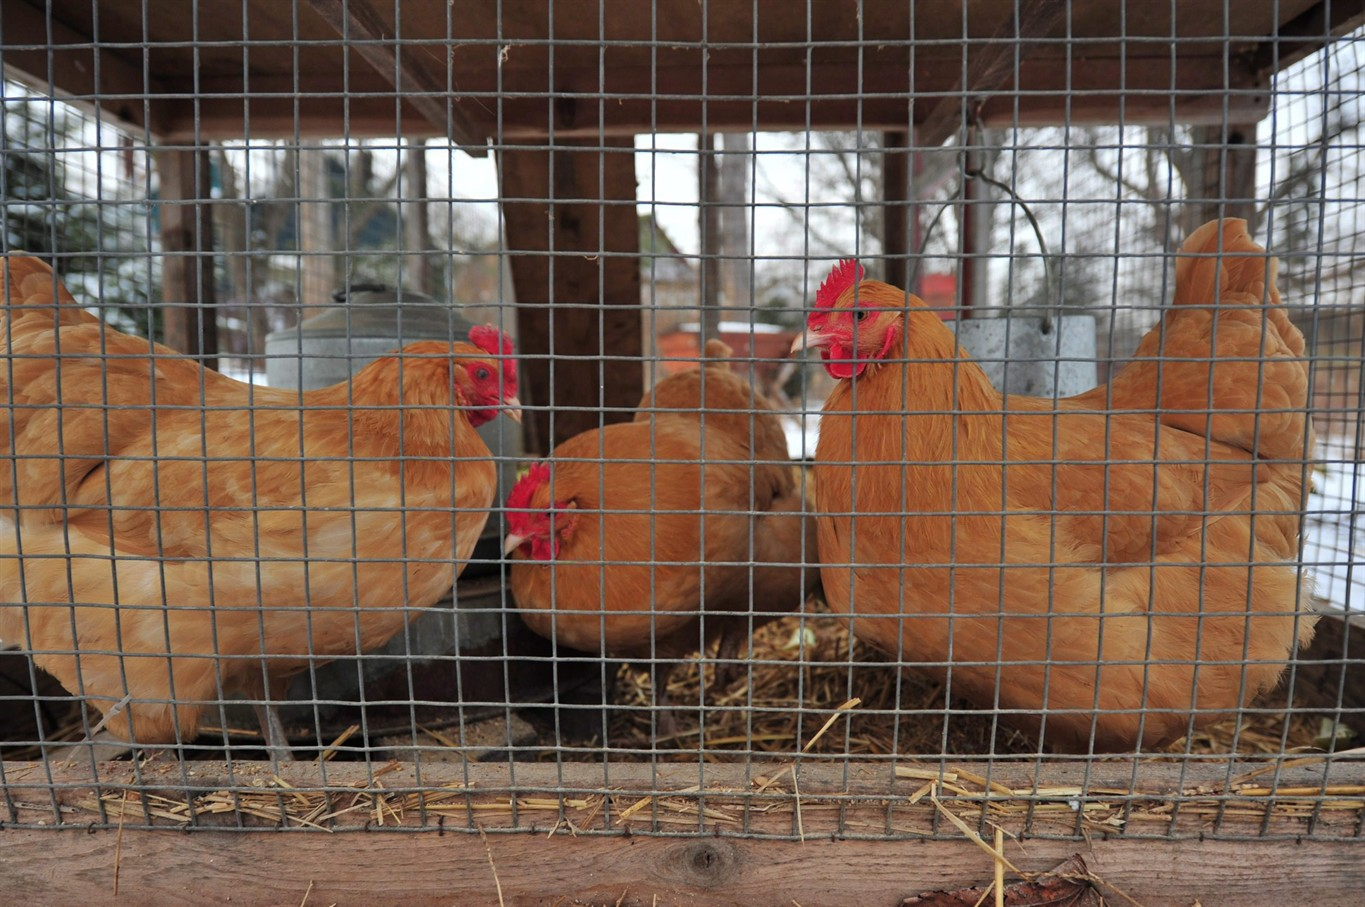 Backyard chickens get OK under Toronto pilot project